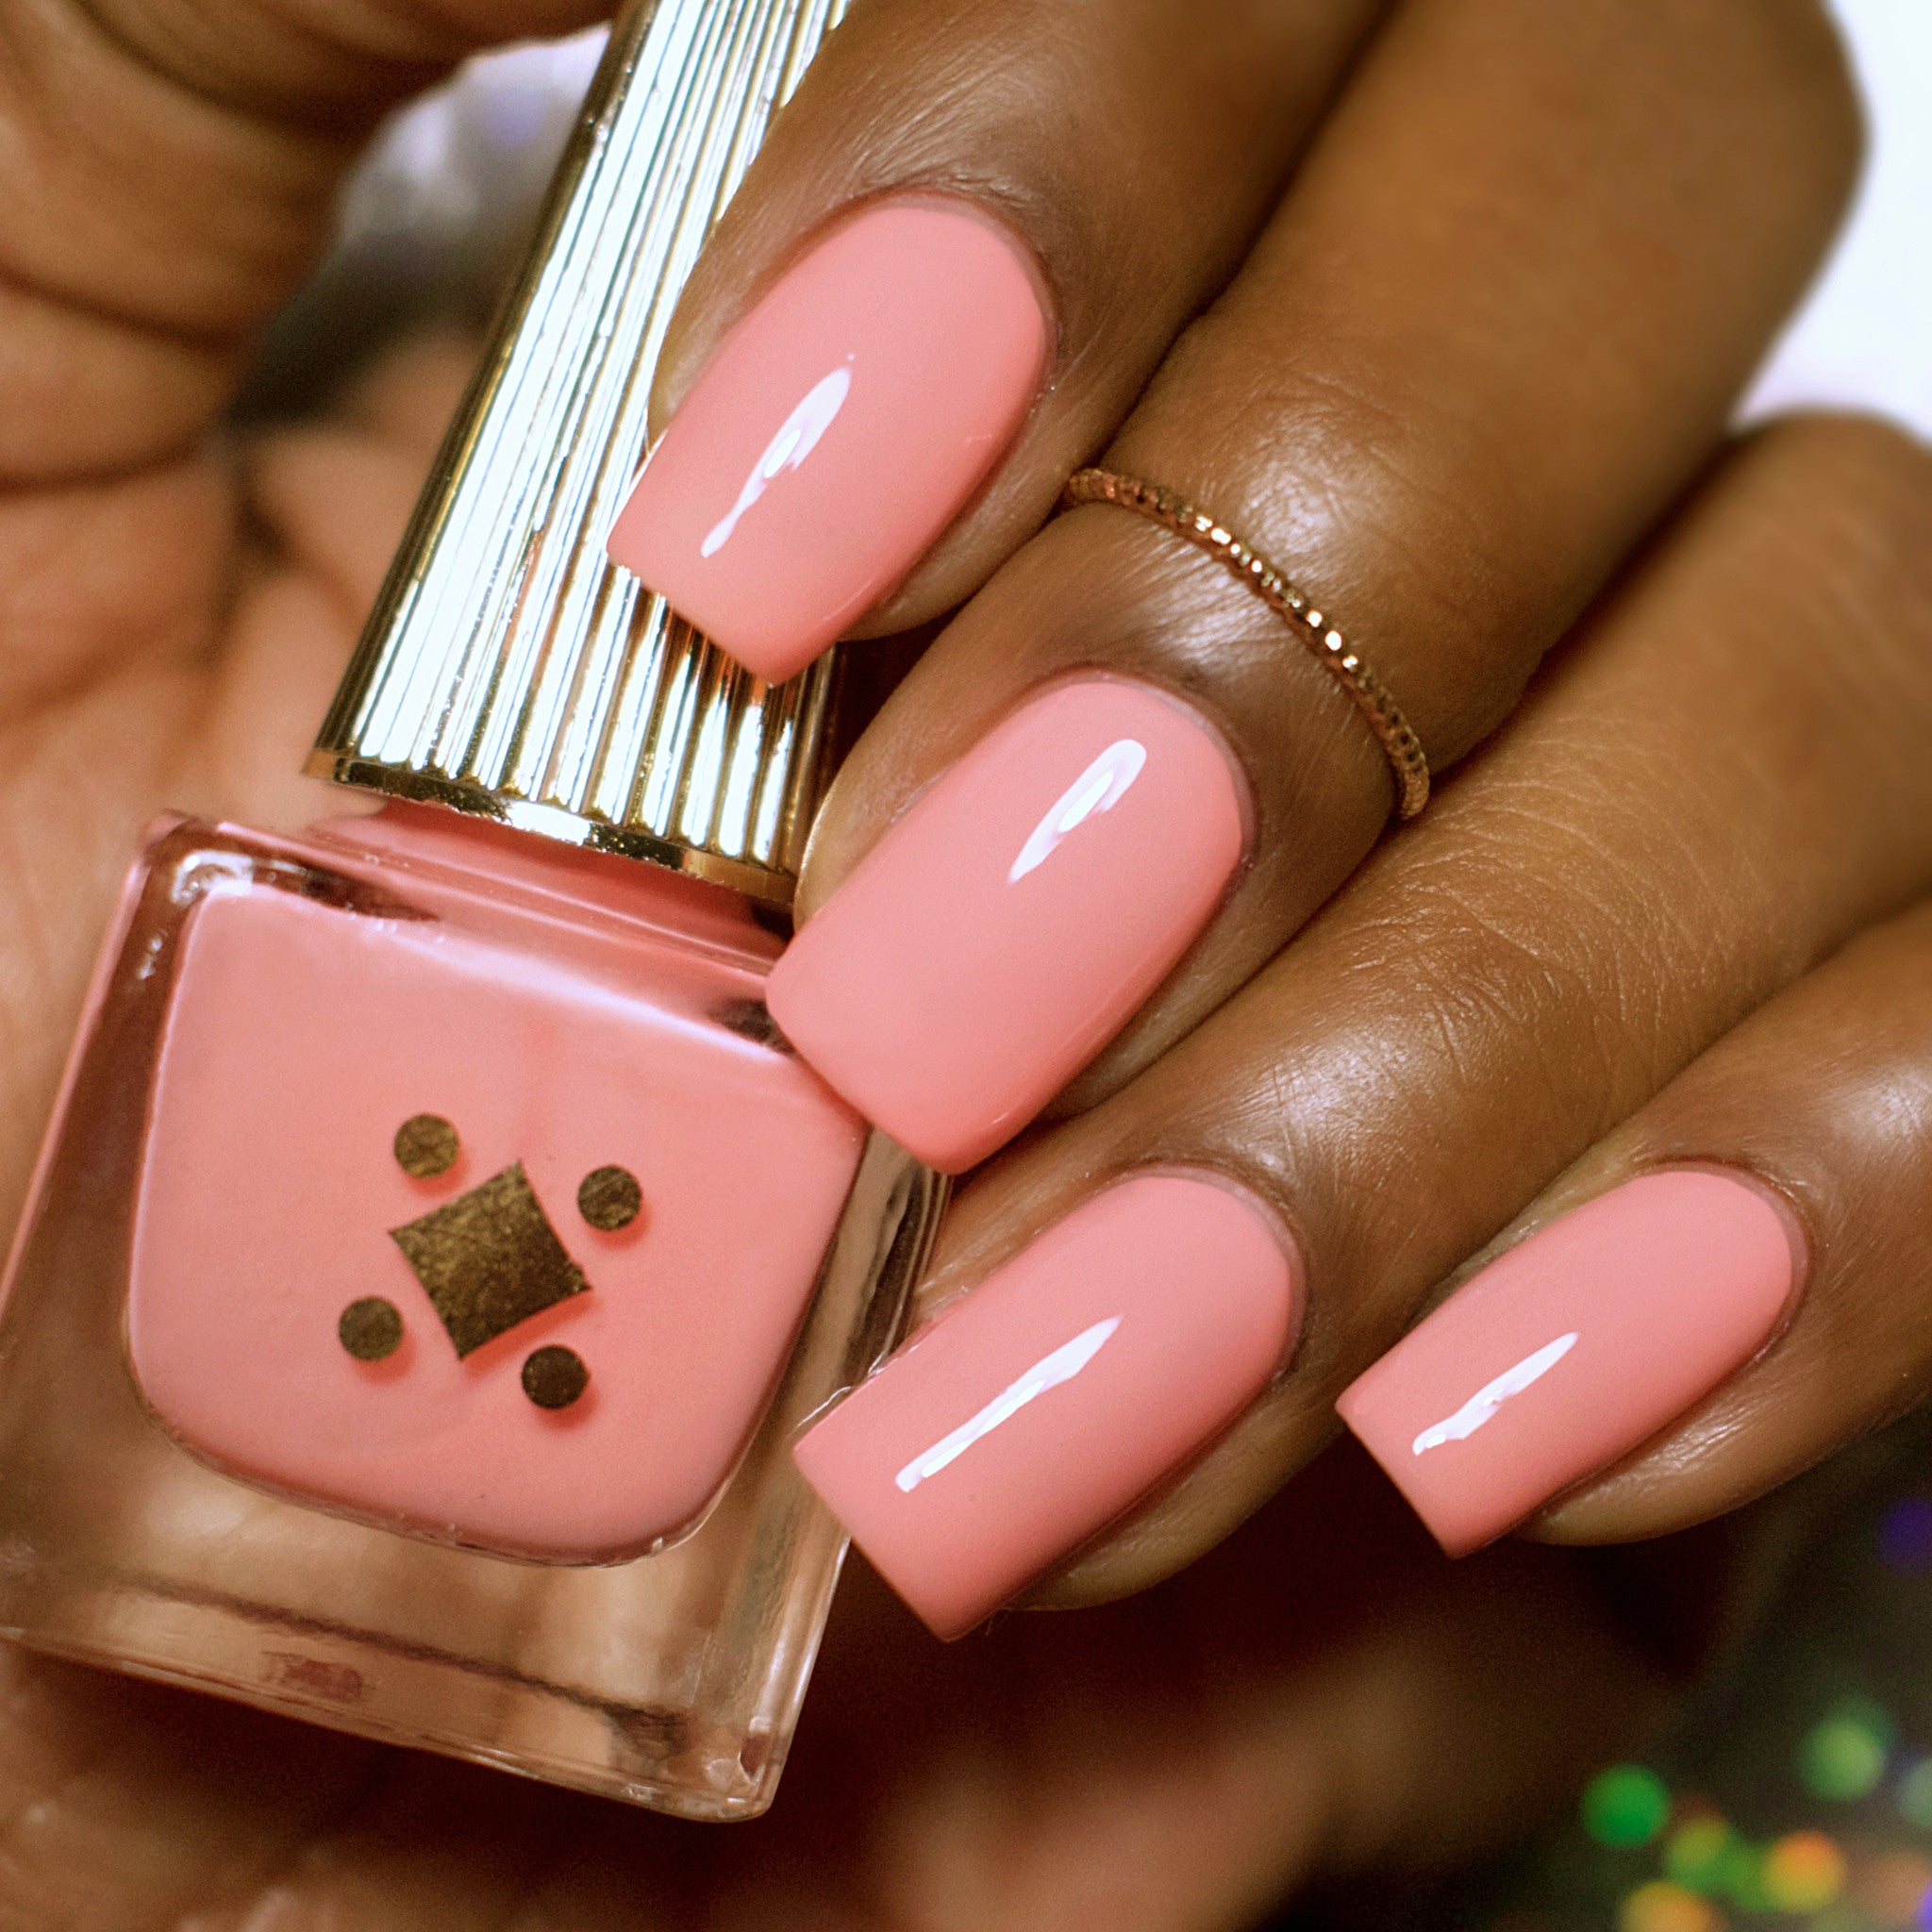 ROSÉ ALL DAY -  peach crème nail lacquer by Deco Miami